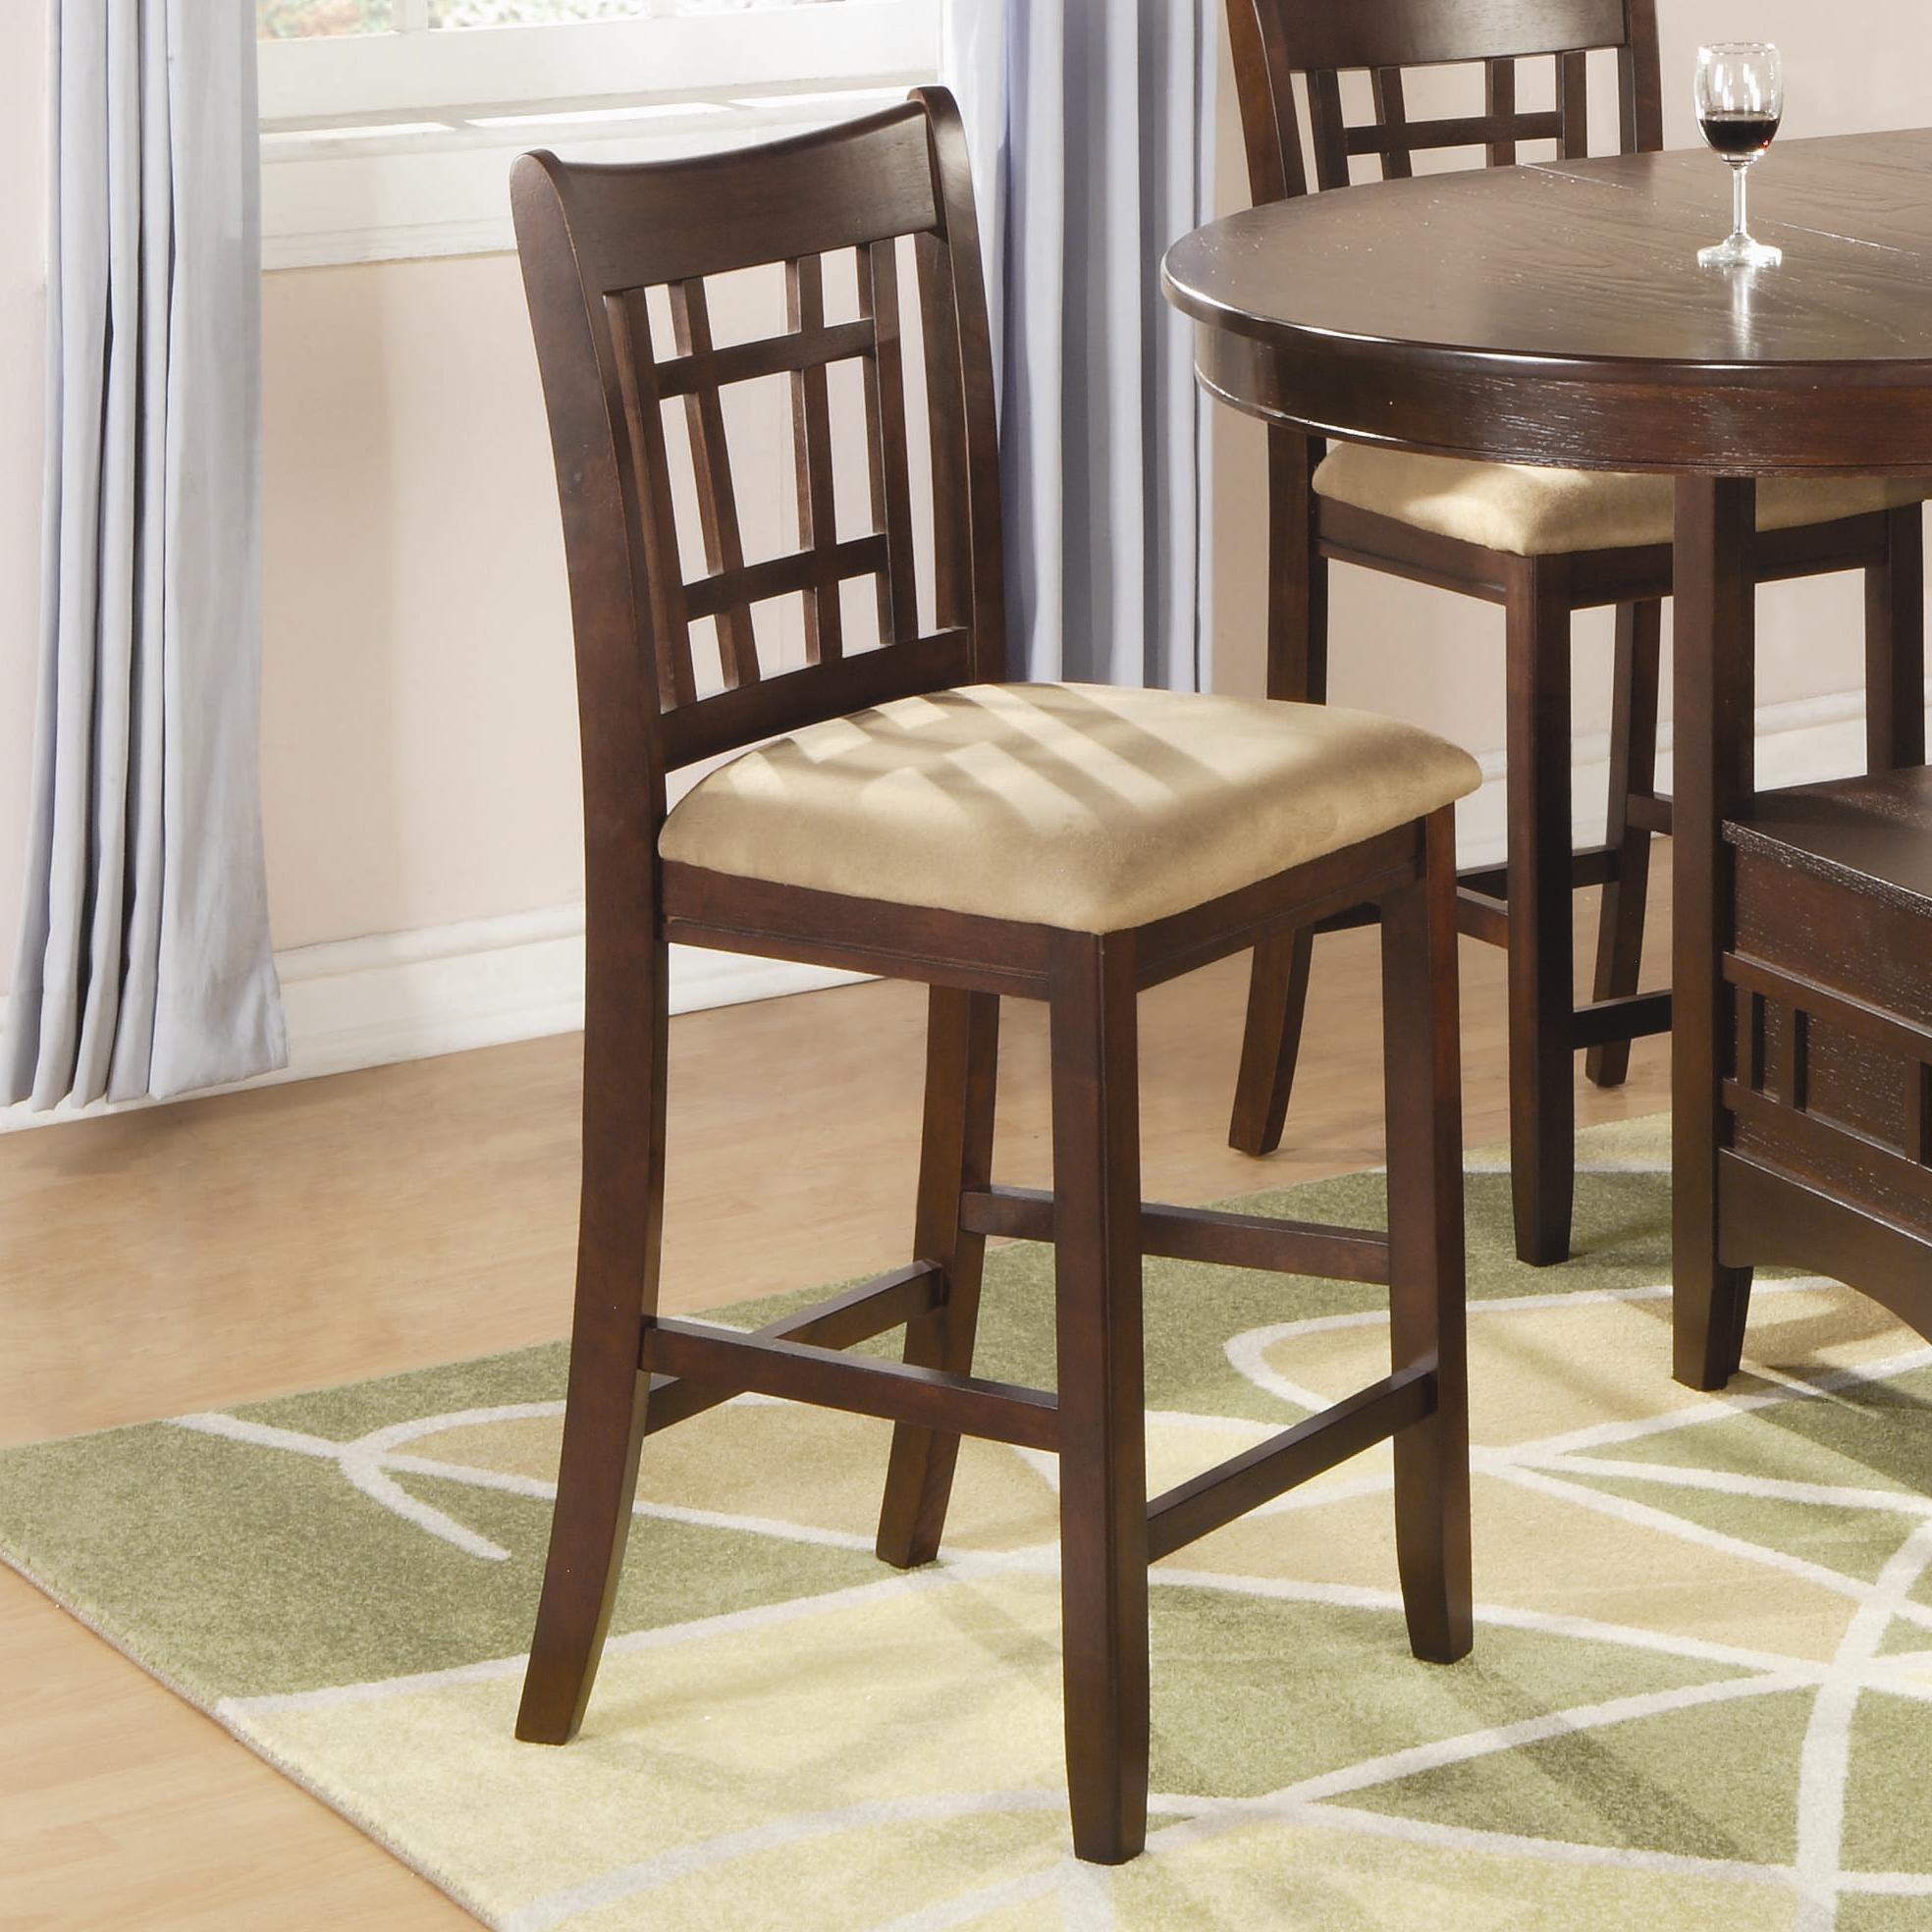 Bar Stools Chairs Coaster Lavon 24 Inch Bar Stool Value City Furniture